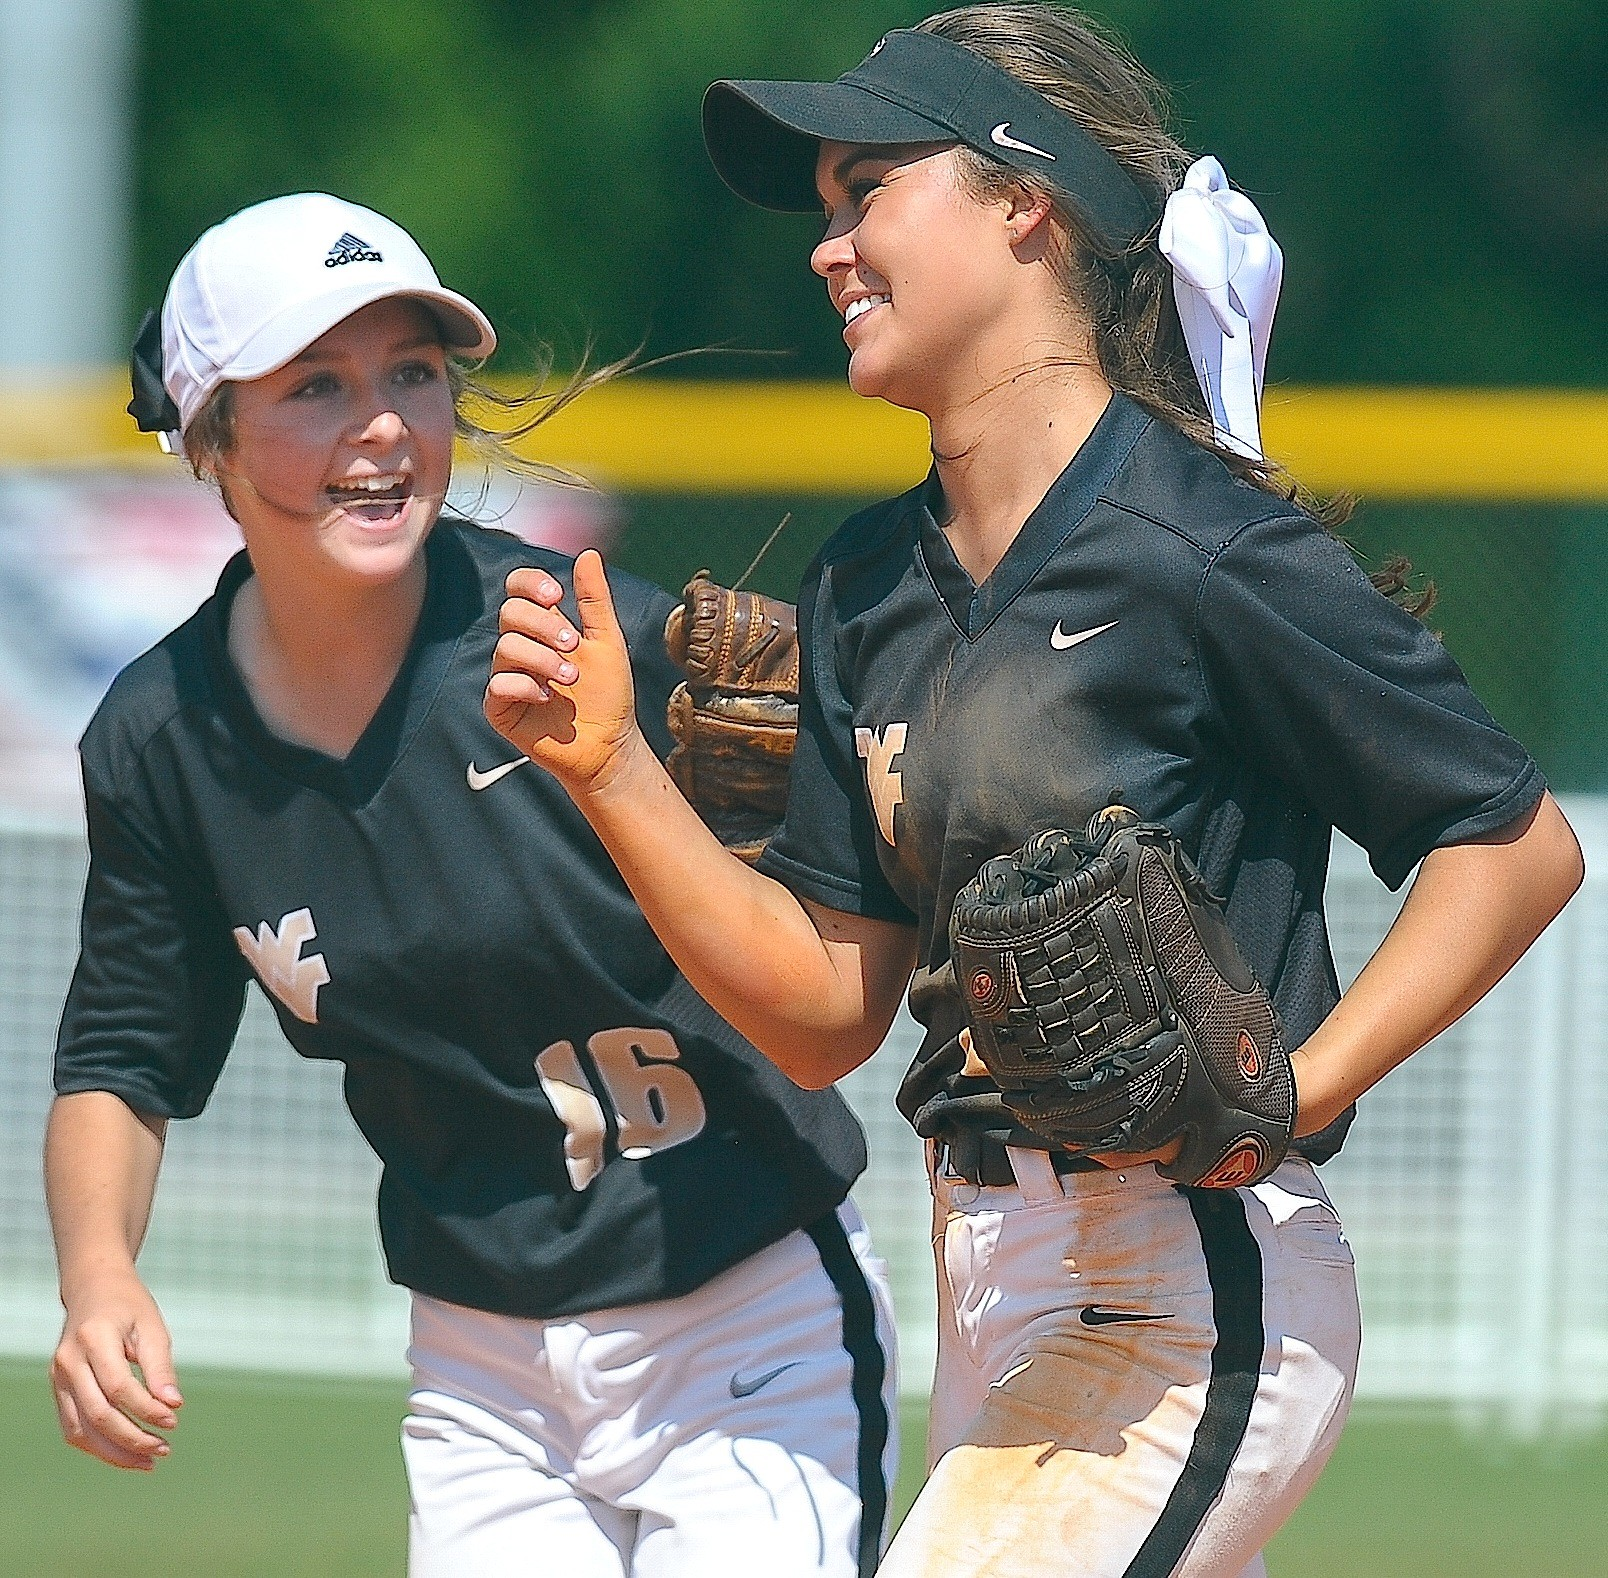 Walker players Maylen Sargent (16) and Abby Trotter, right, celebrate a double play during the Lady Vikings' game against Chelsea at Lagoon Park in Montgomery.